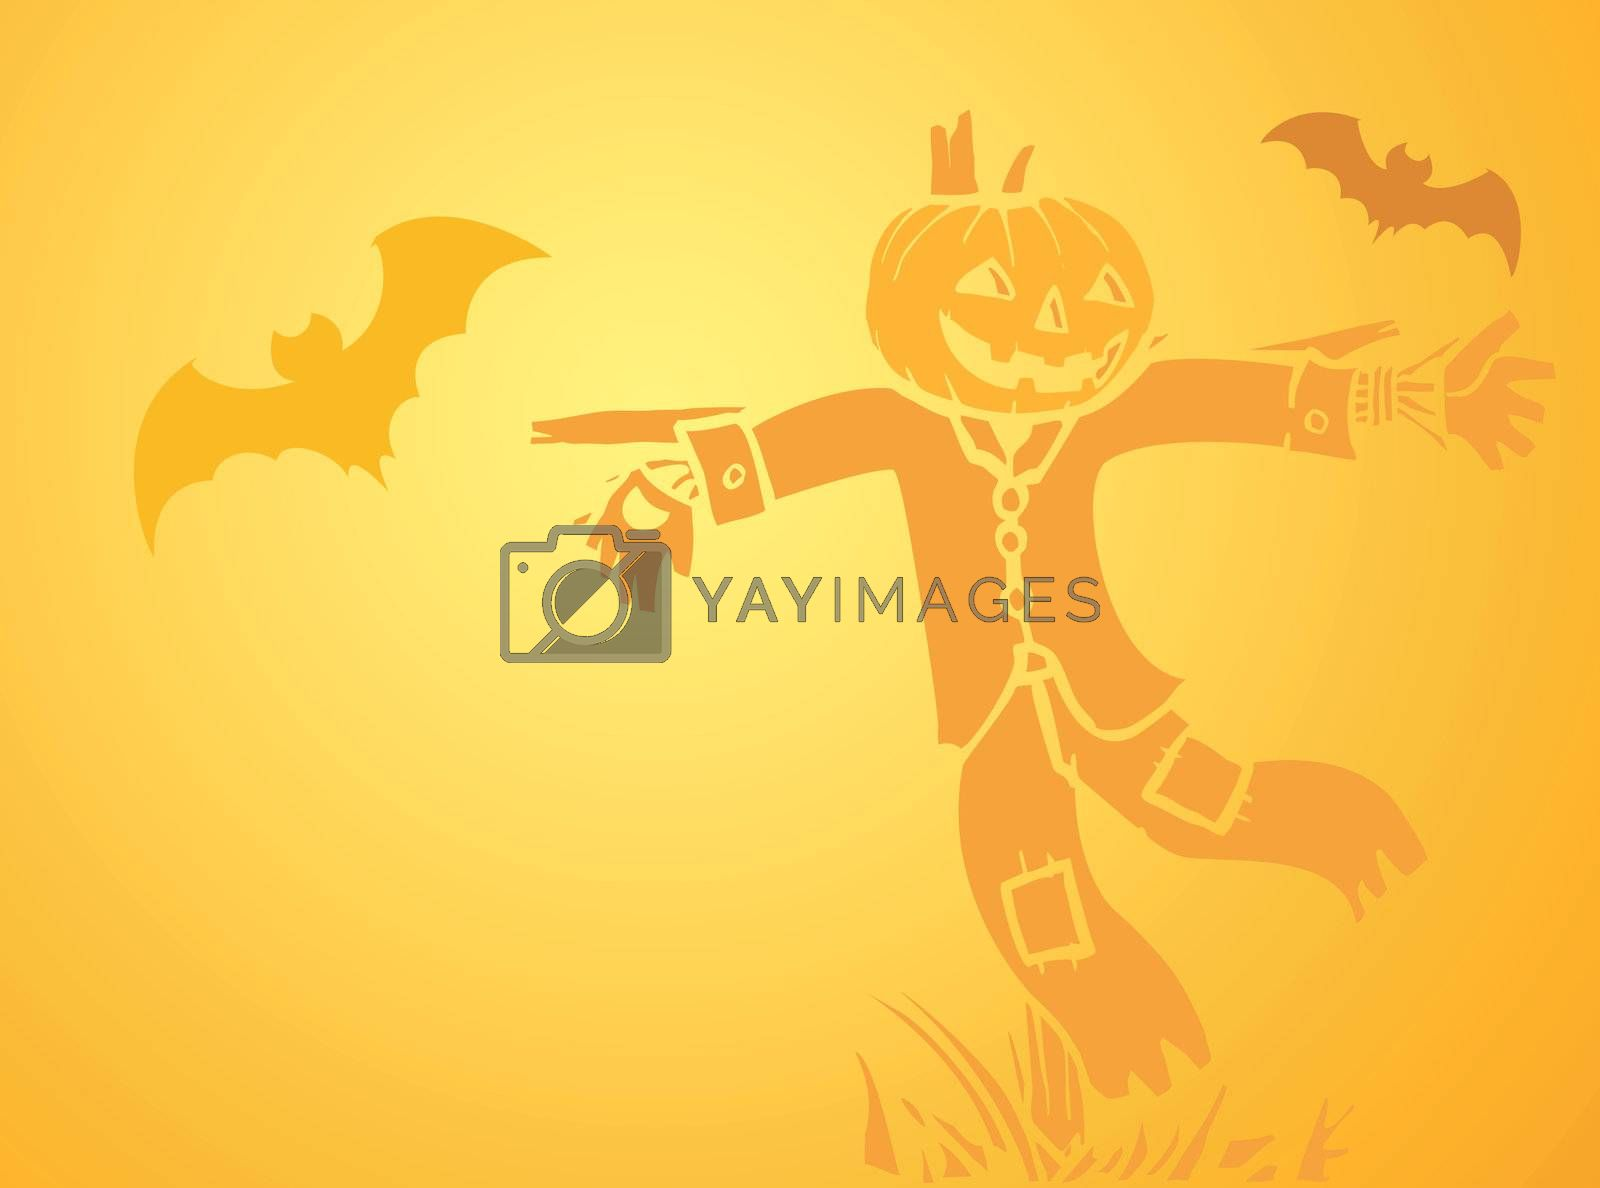 Softly orange colored desktop background, halloween themed with bats and a scarecrow.